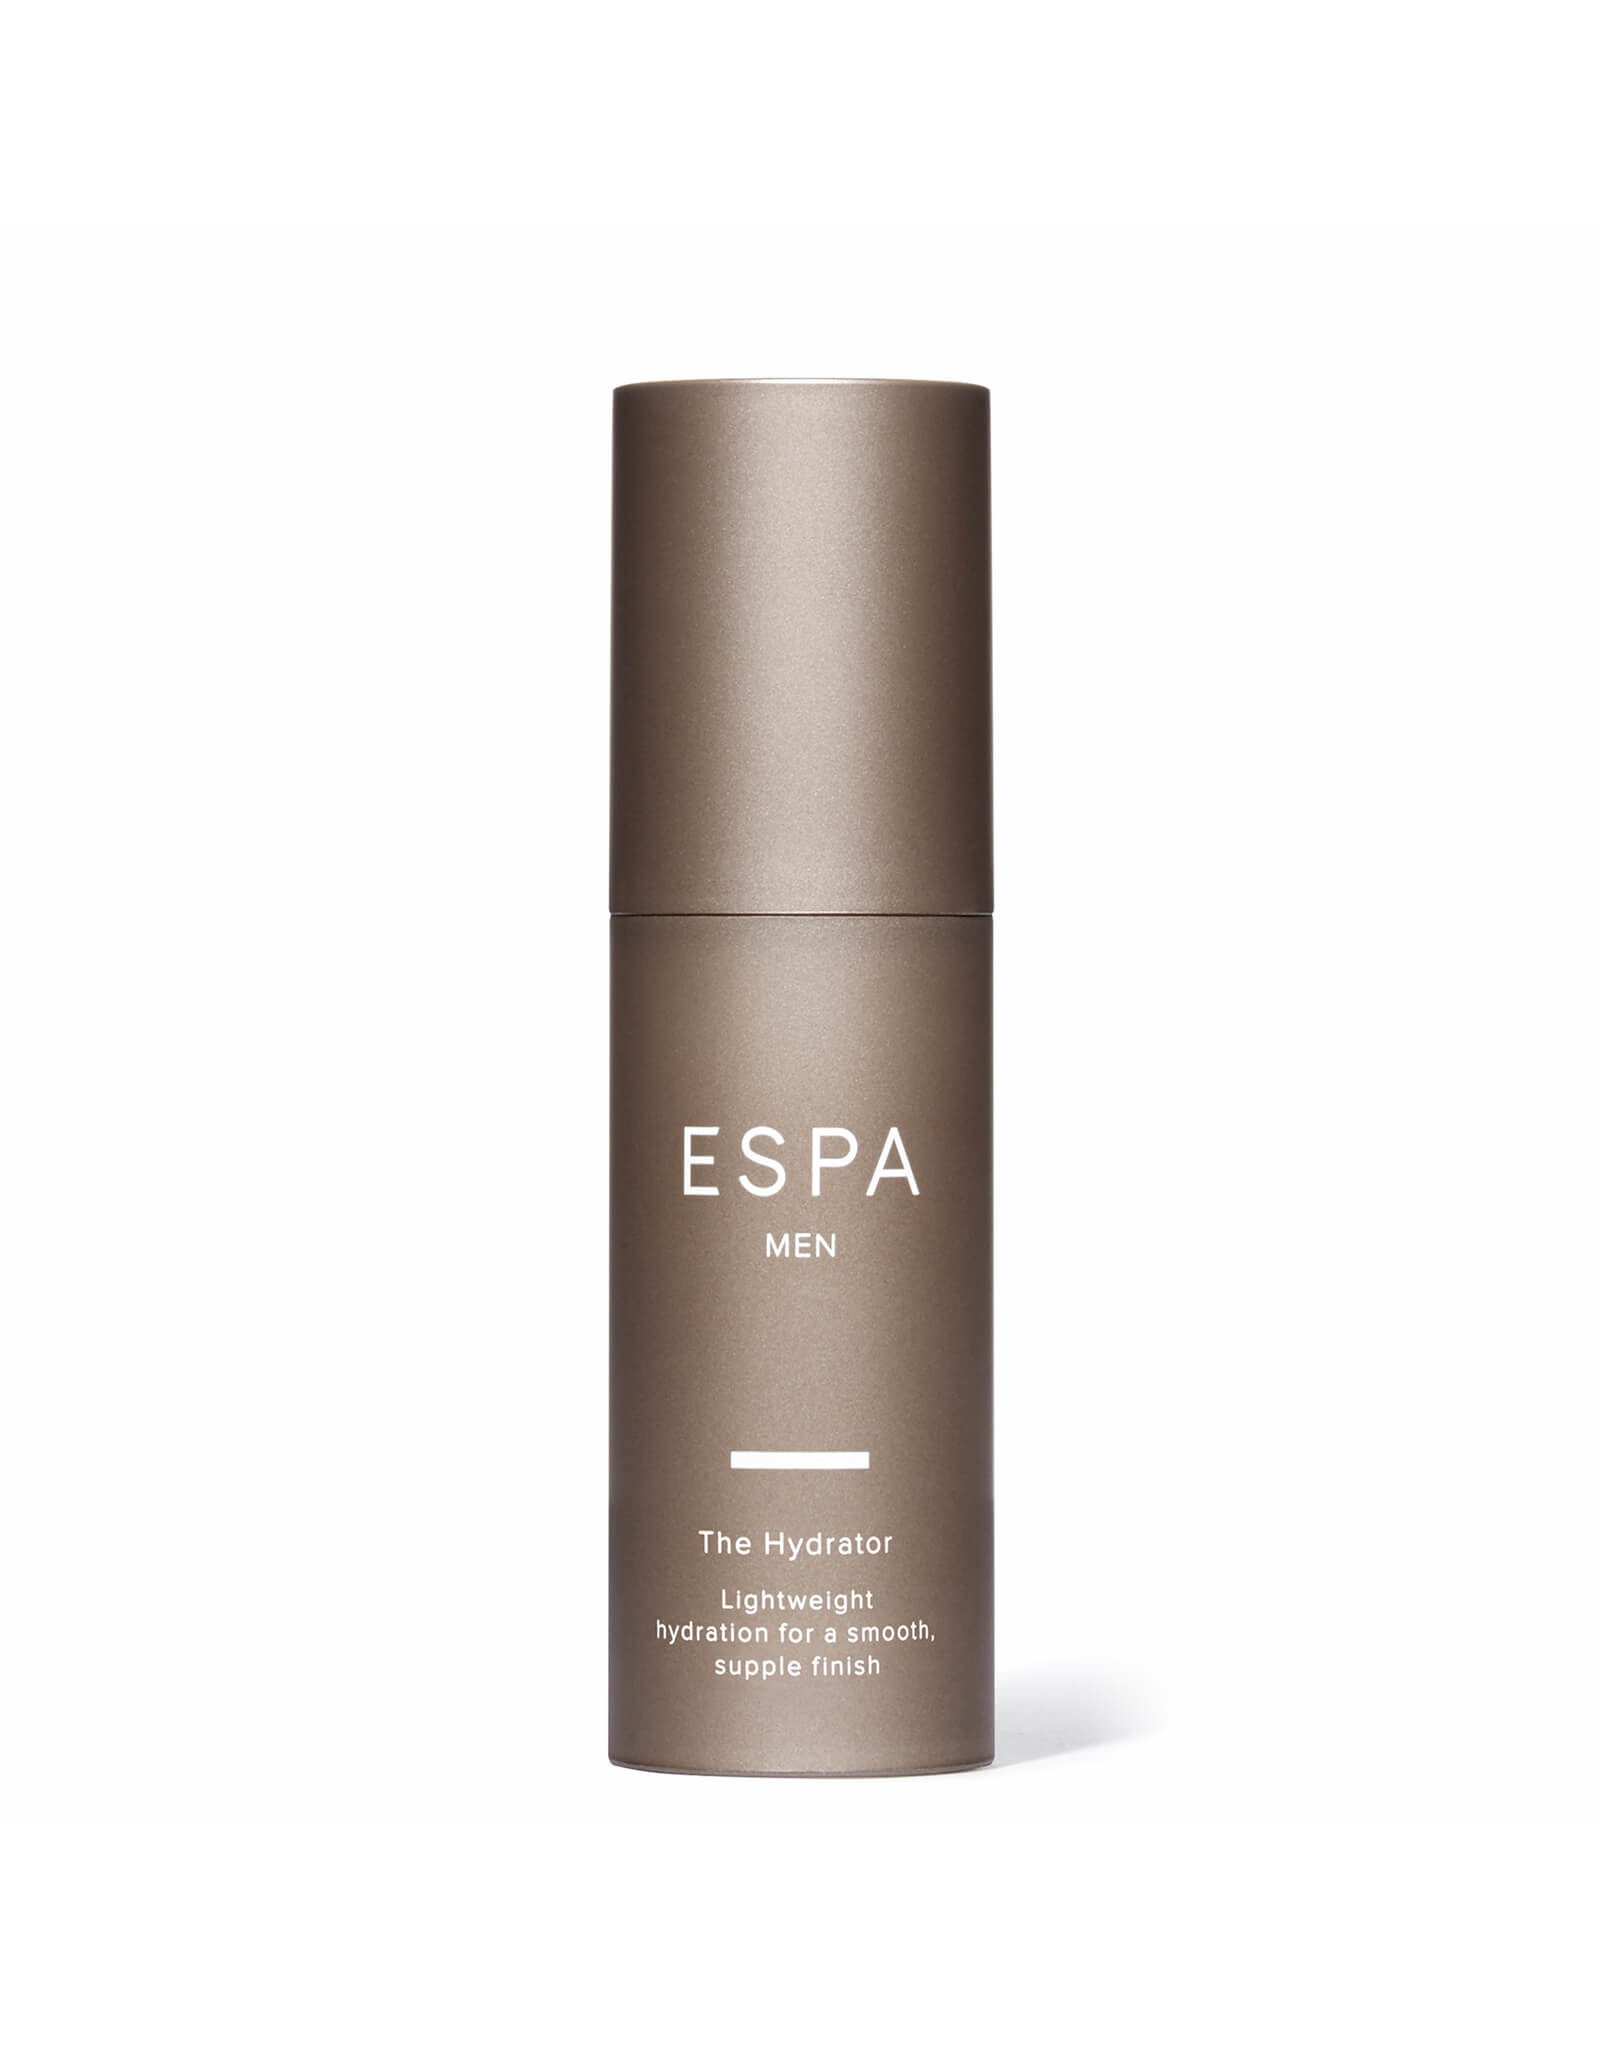 ESPA Men The Hydrator, 35ml